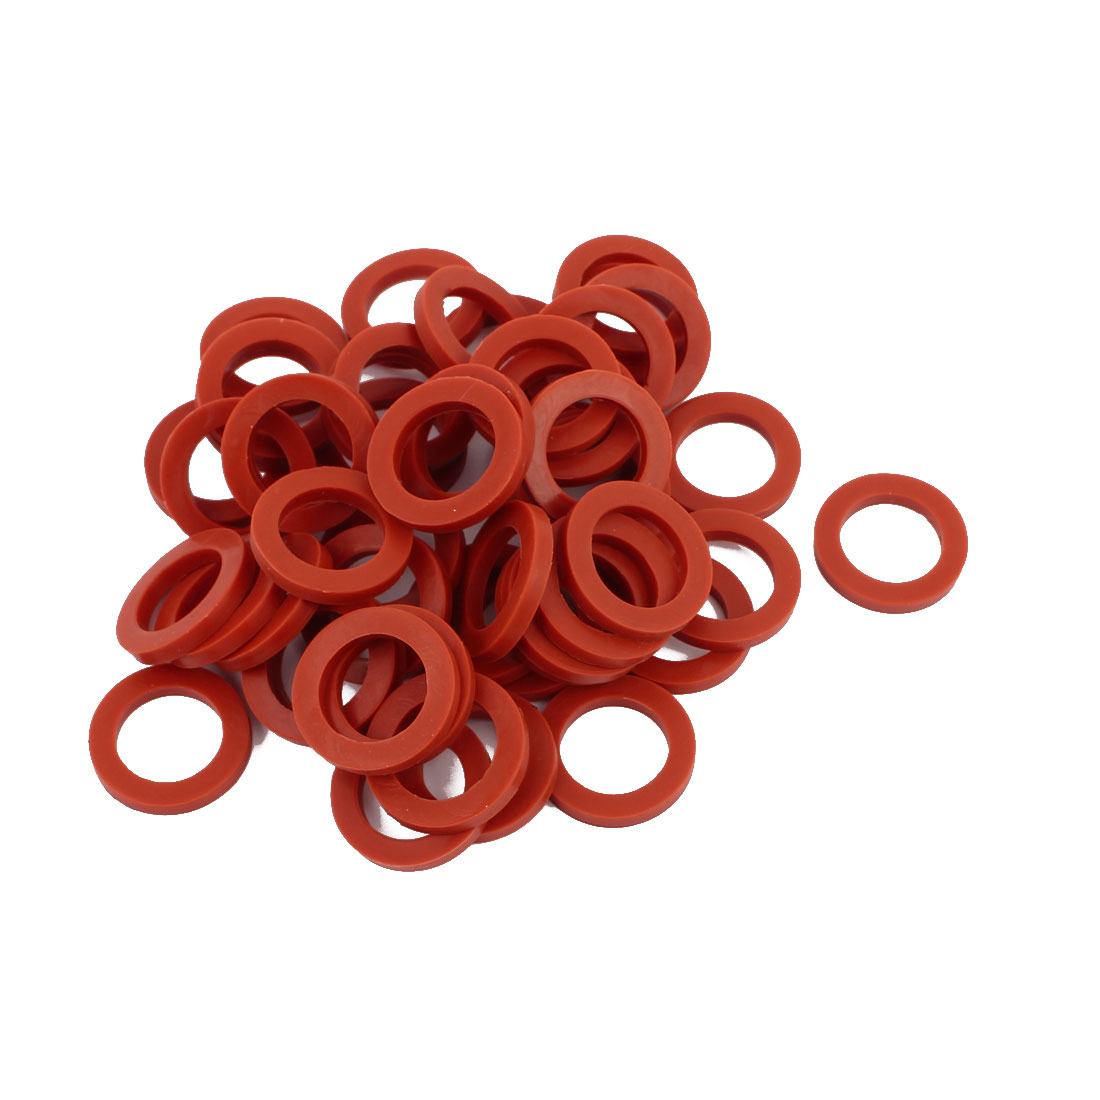 50pcs 24mm x 16mm x 3mm O-Ring Hose Gasket Silicone Washer for Water Heater